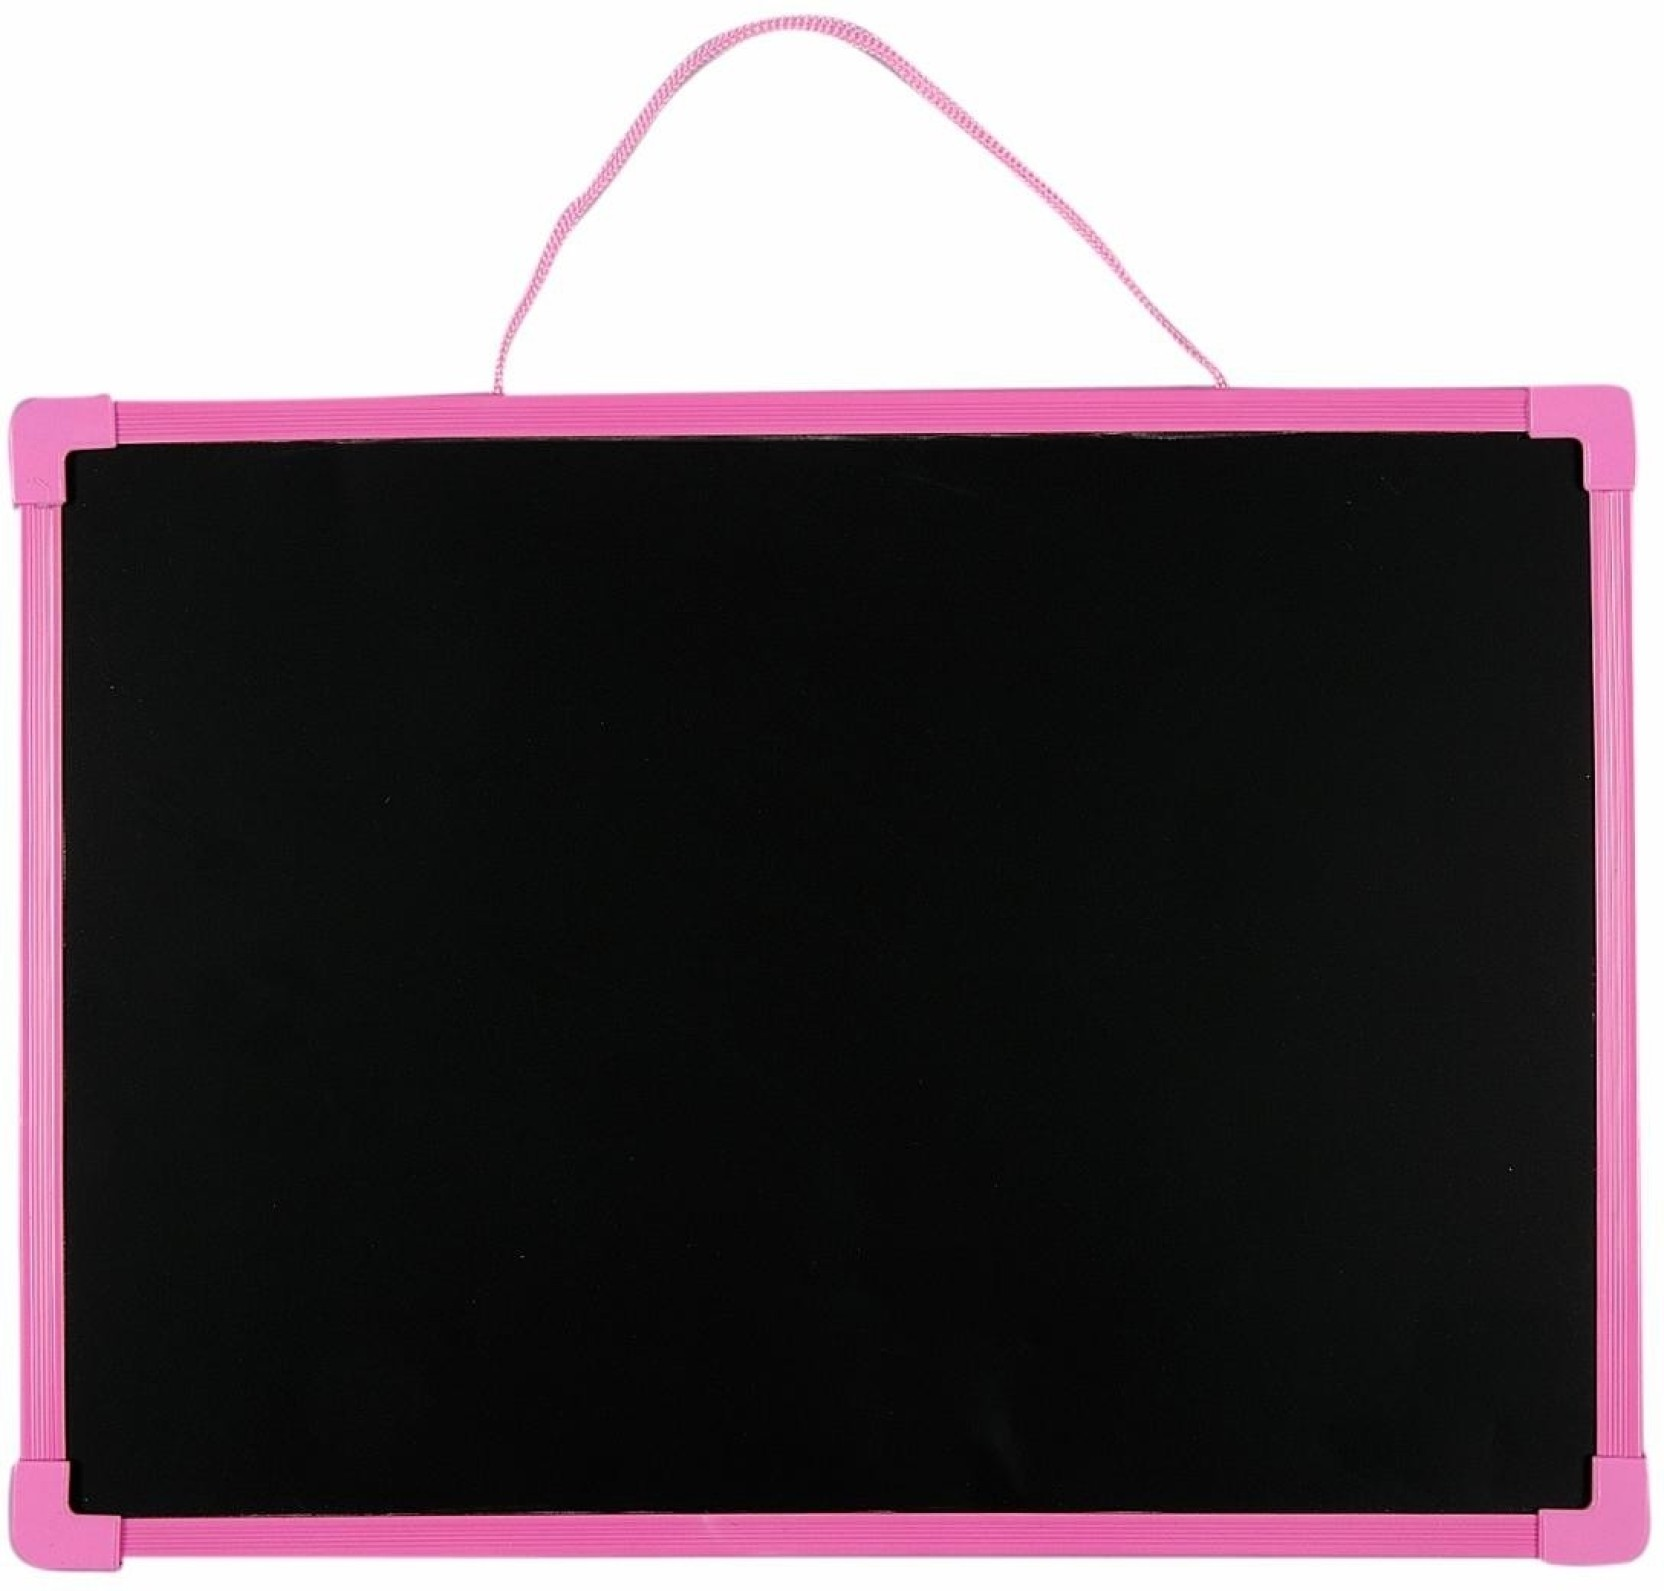 Ollington st collection double sided writing board